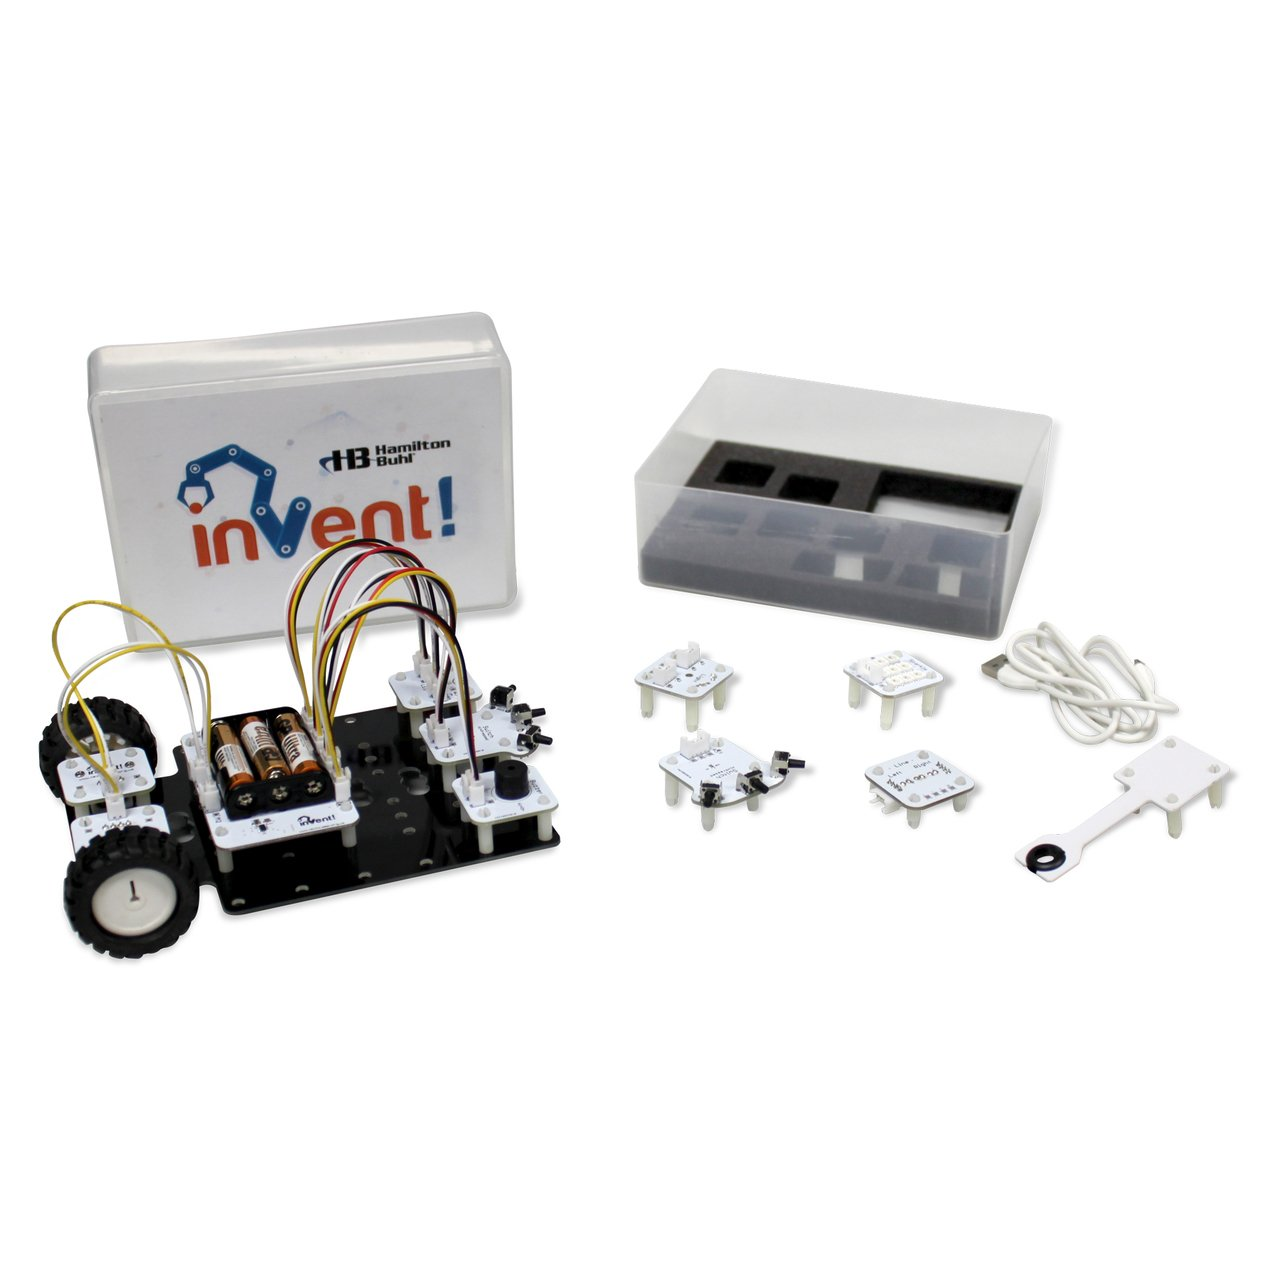 Hamilton Buhl Invent! Kit - STEAM Education Robot Assembling and Coding Smart Toys Hamilton Buhl